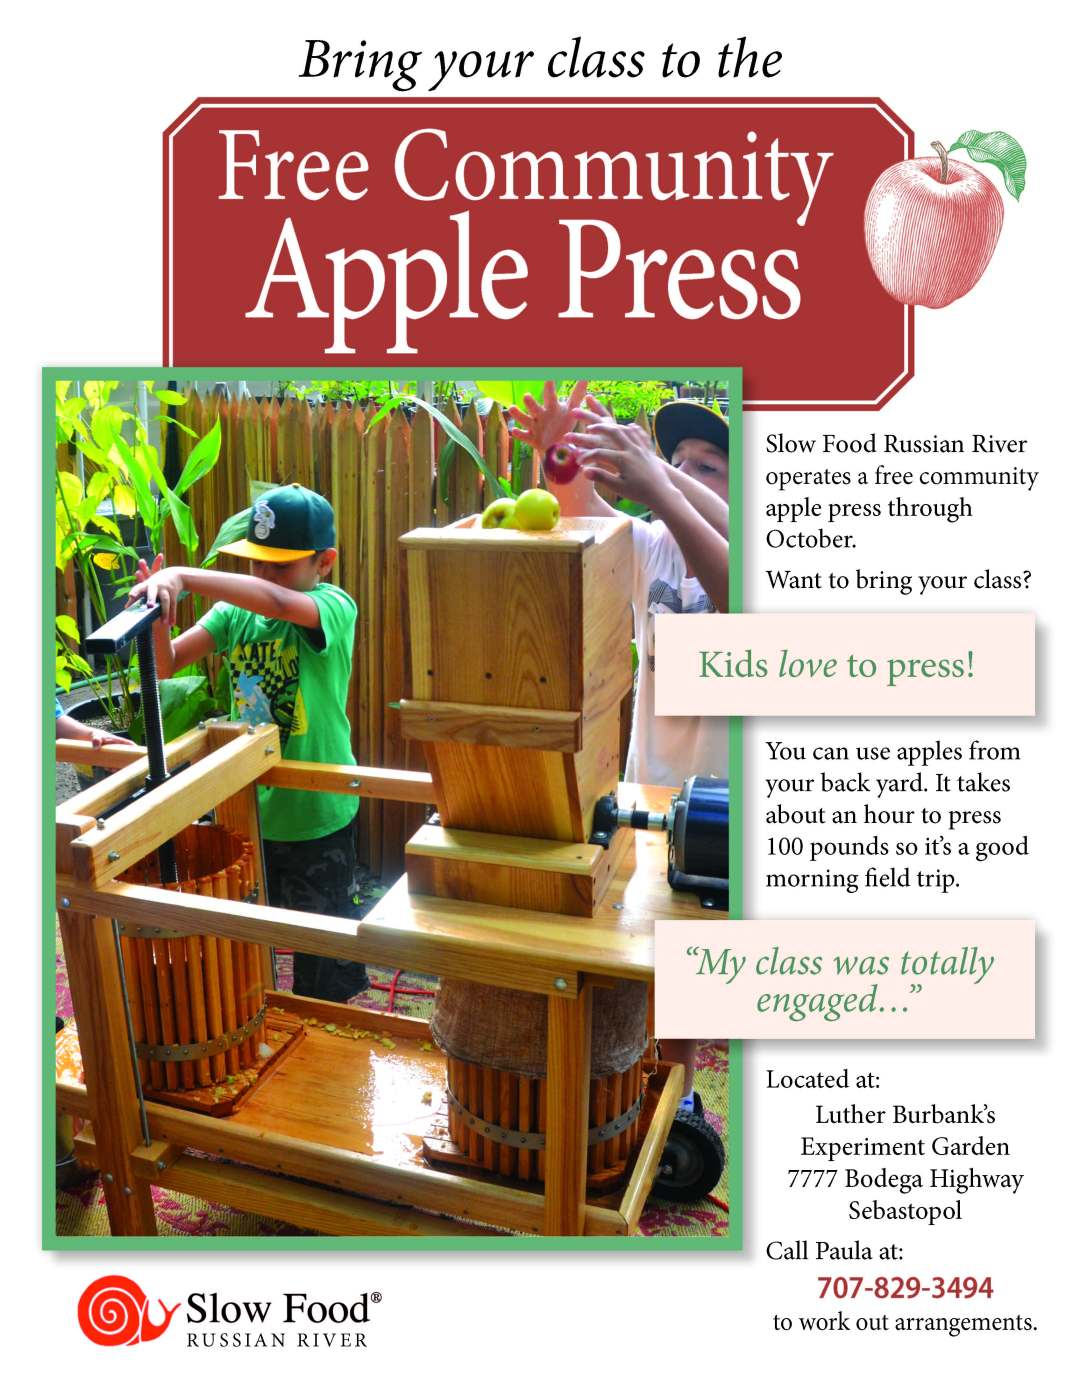 Bring your class to the FREE Community Apple Press